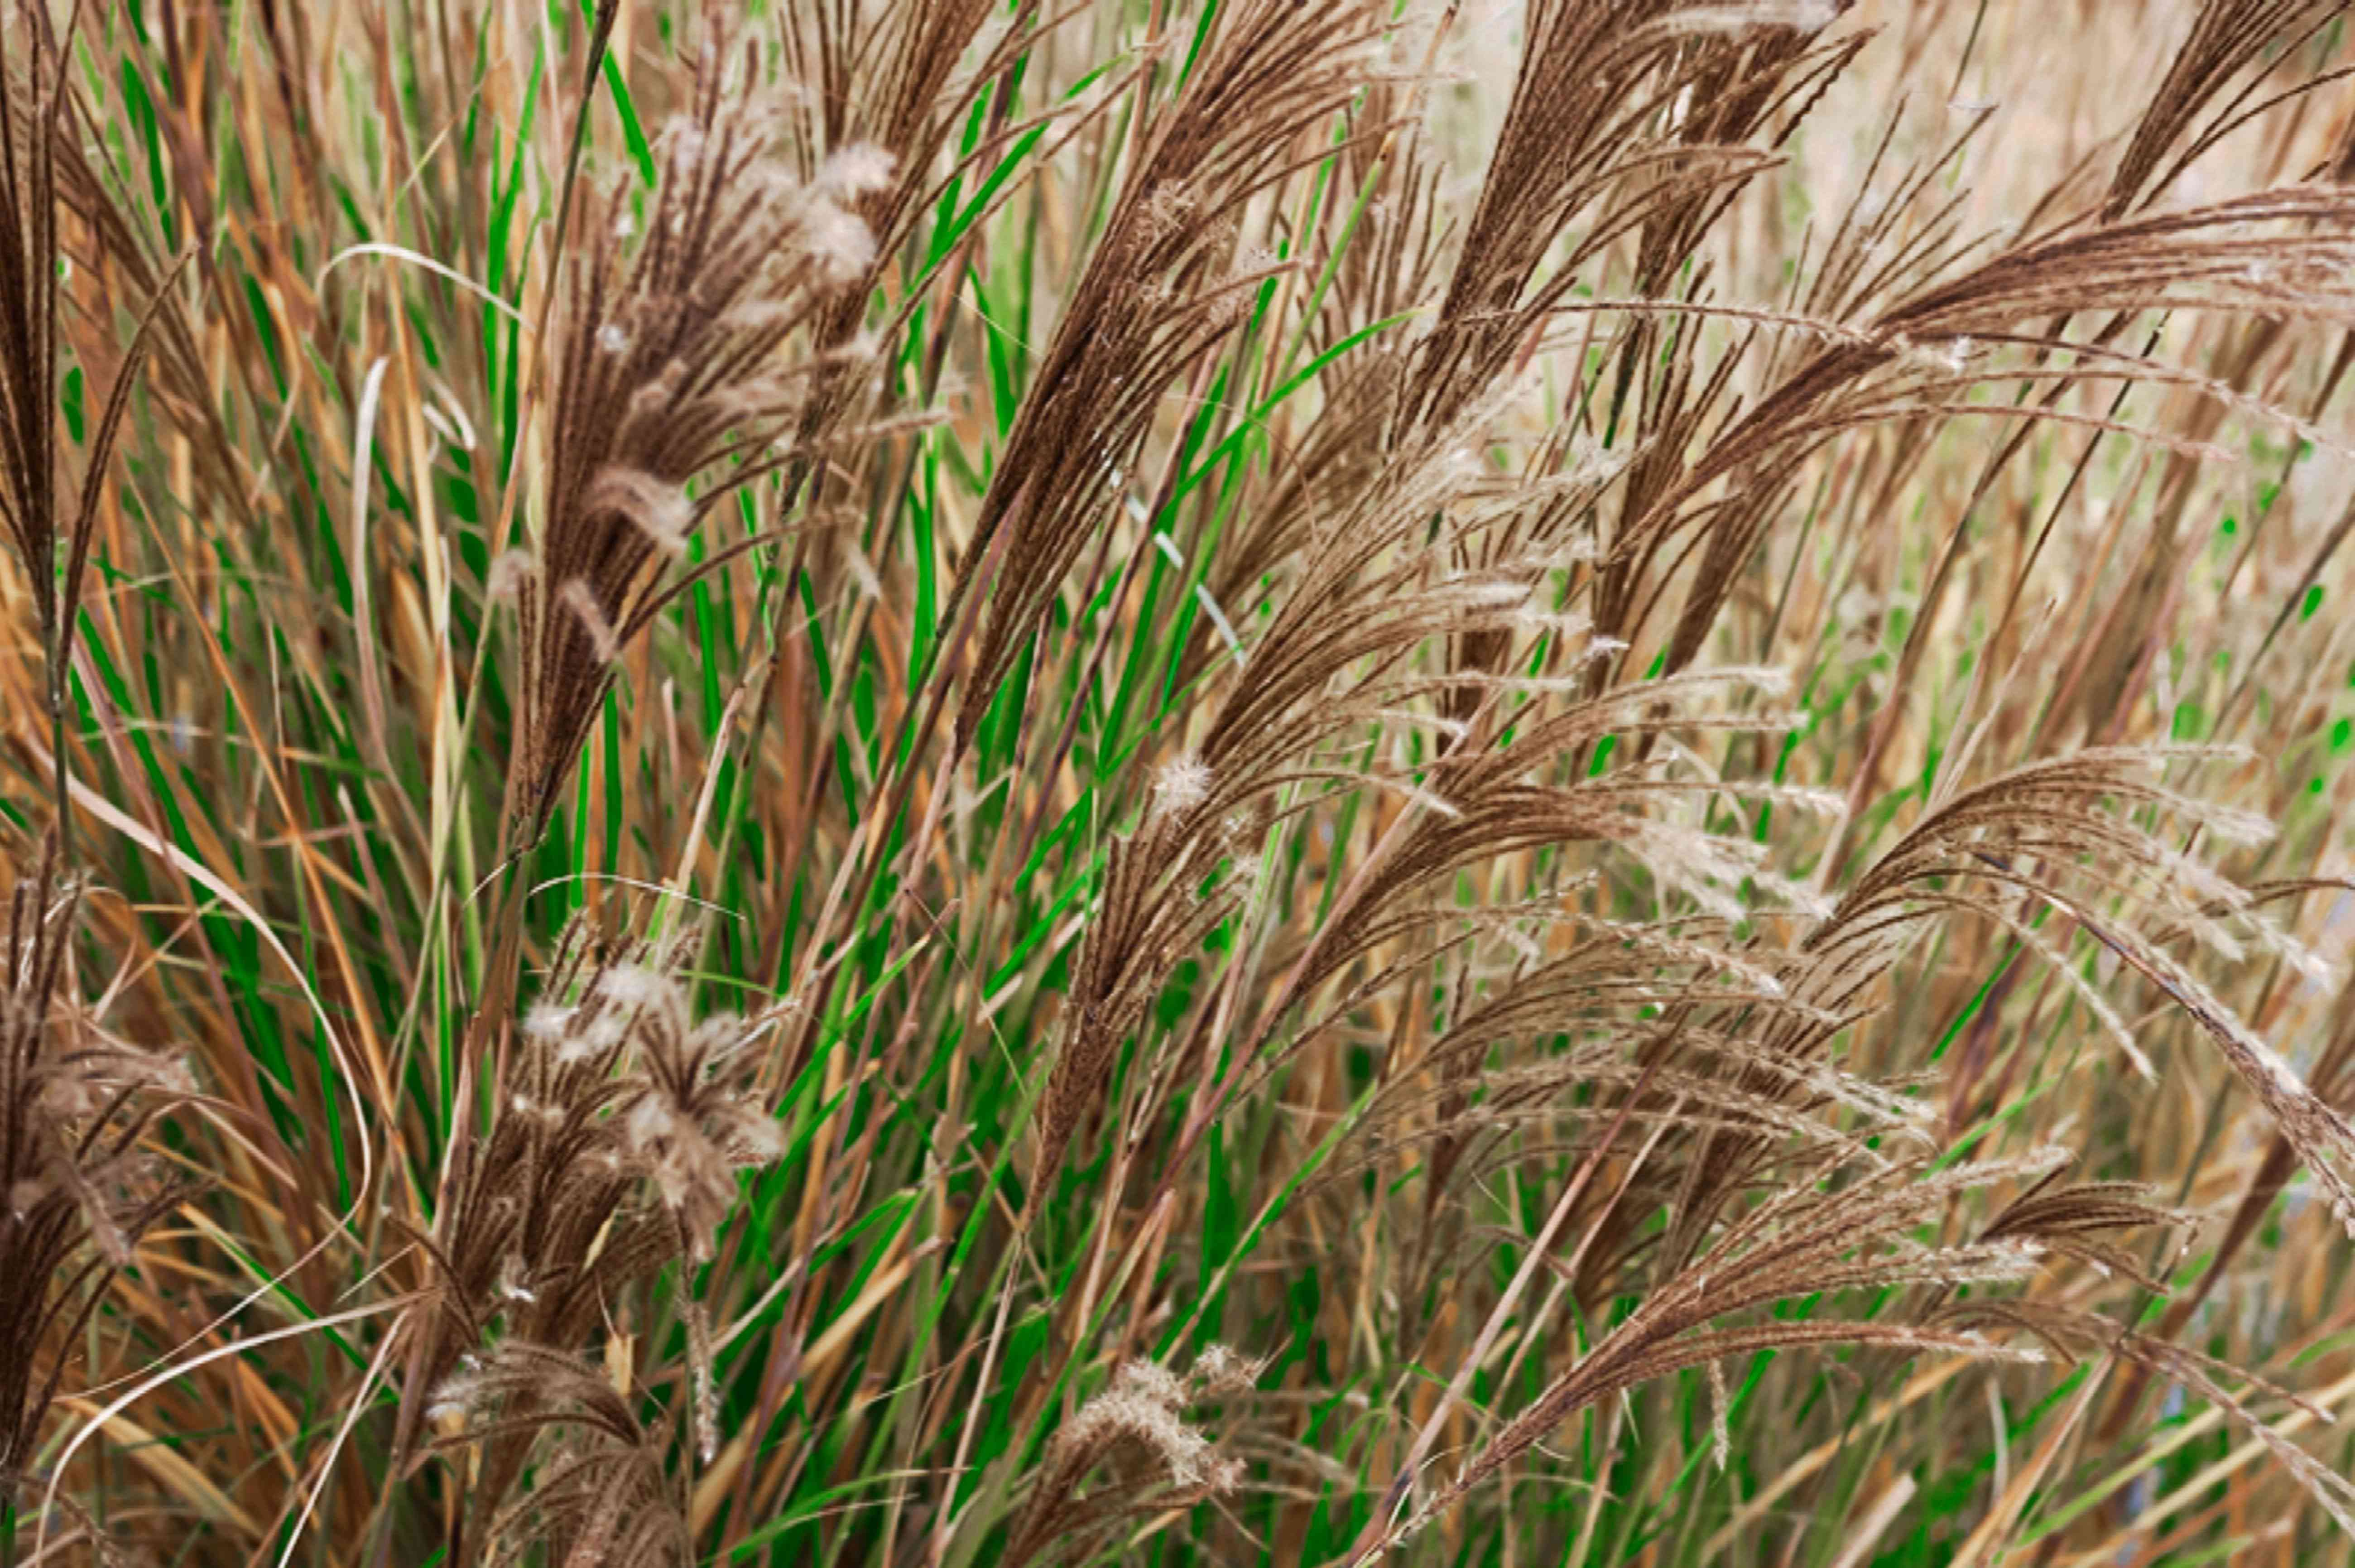 Maiden grass plant with tan clump-forming leaf blades closeup